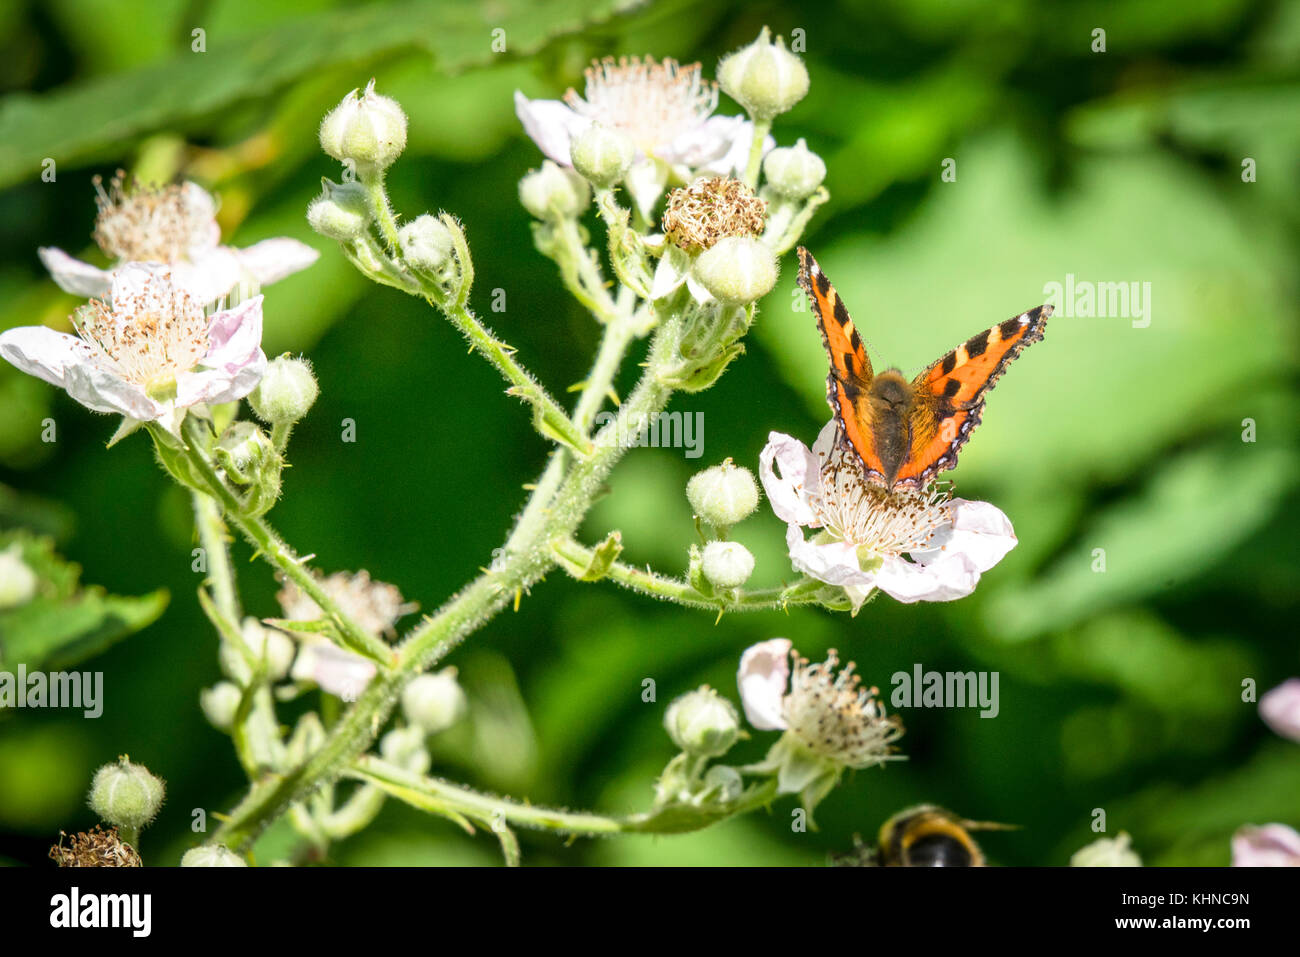 Tortoiseshell butterfly in orange colors on a green plant with white flowers in the summer - Stock Image